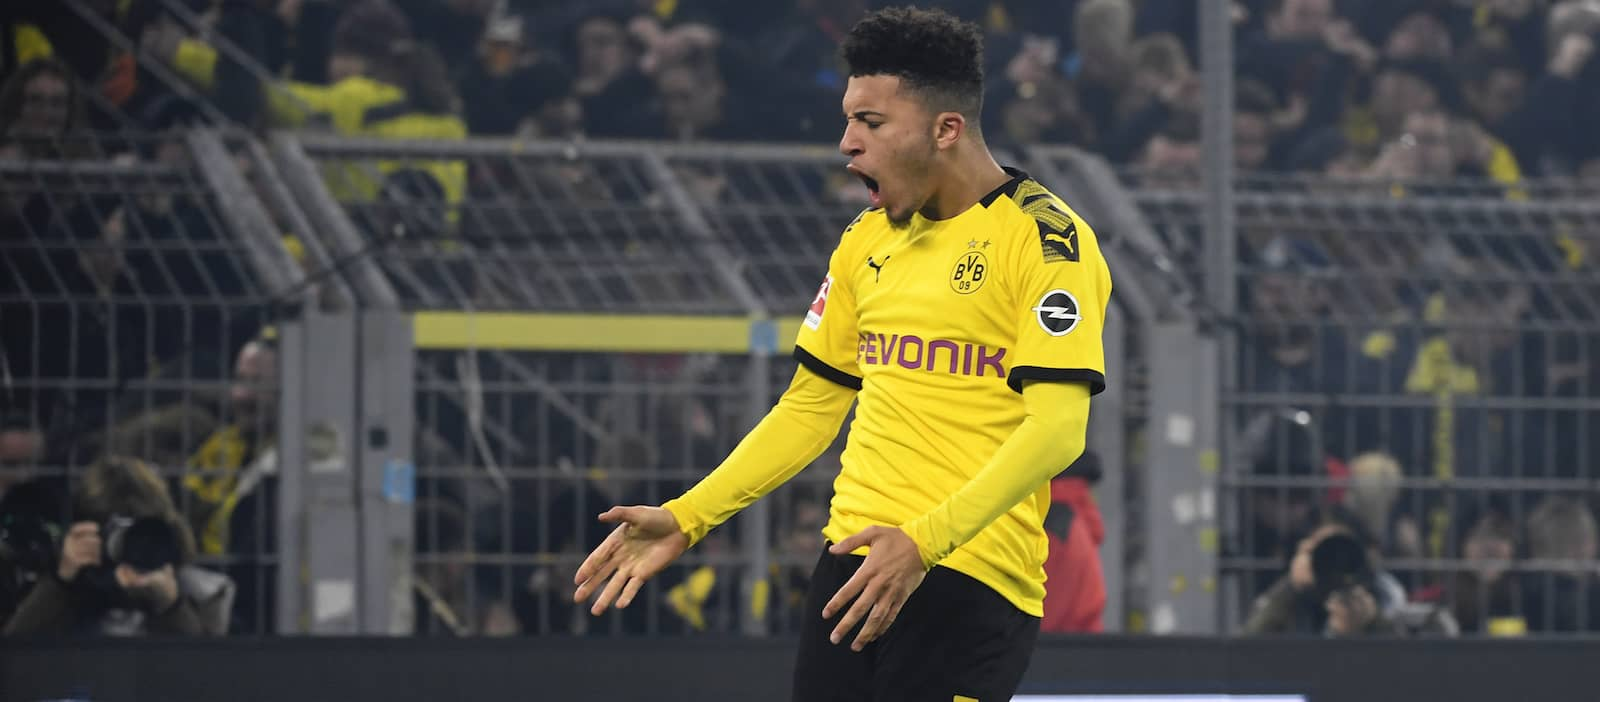 Borussia Dortmund accept Jadon Sancho will depart this summer